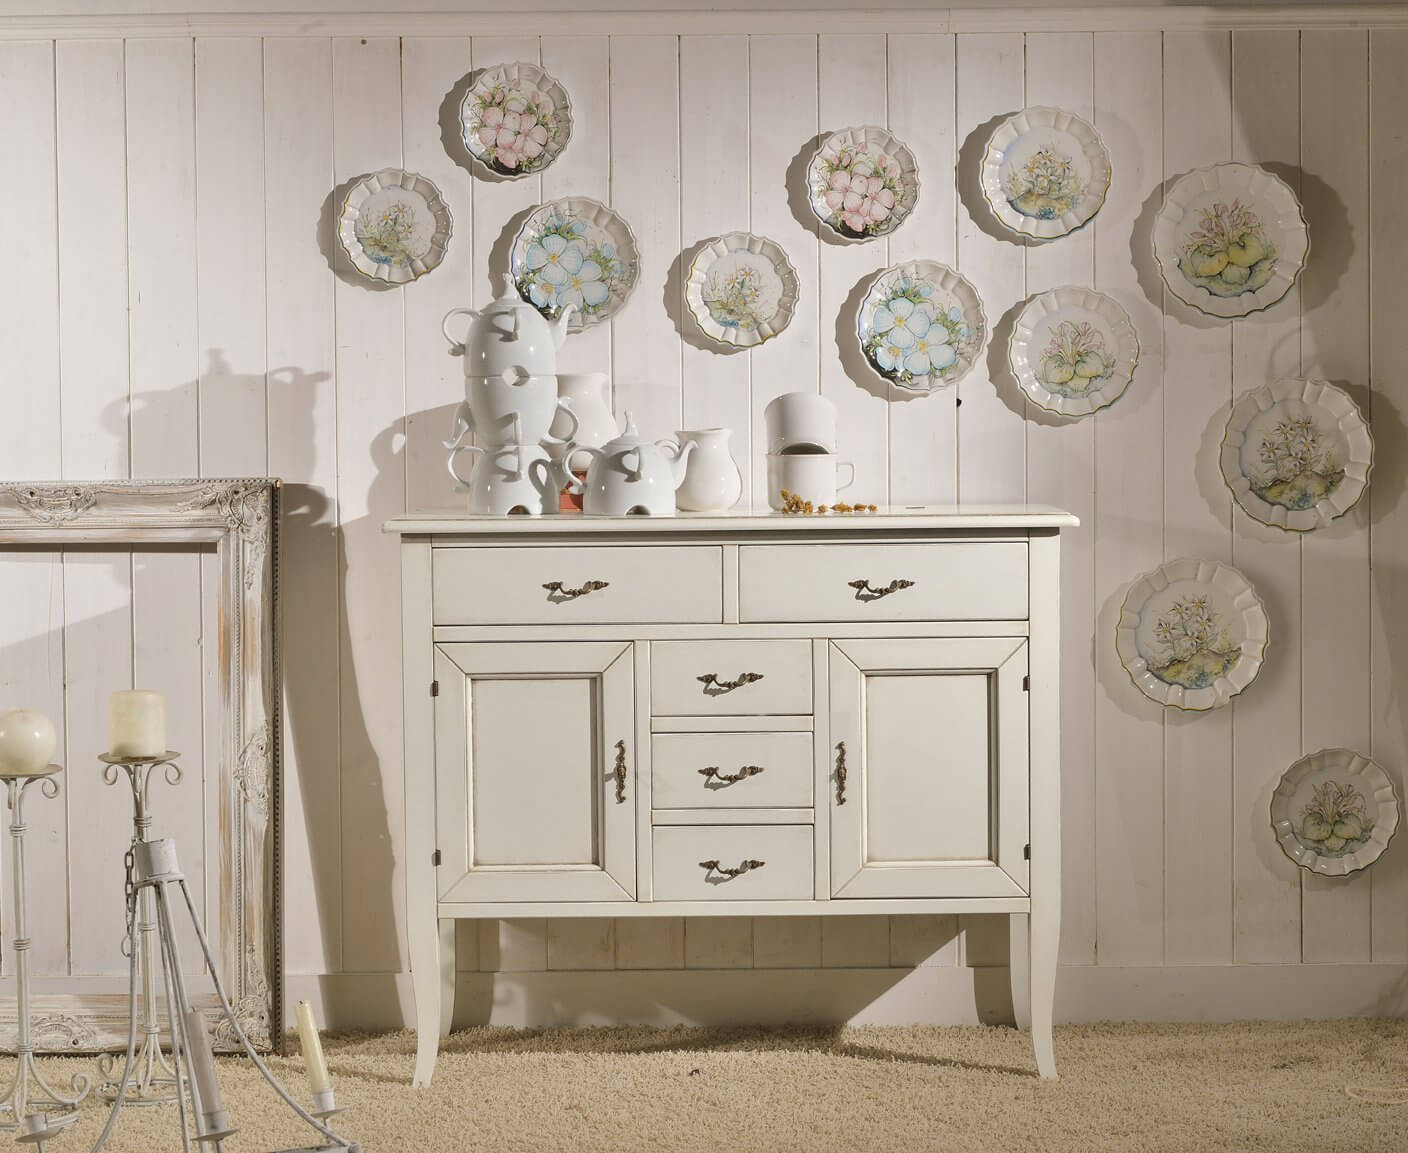 Credenza in stile shabby chic homehome for Casa stile shabby chic